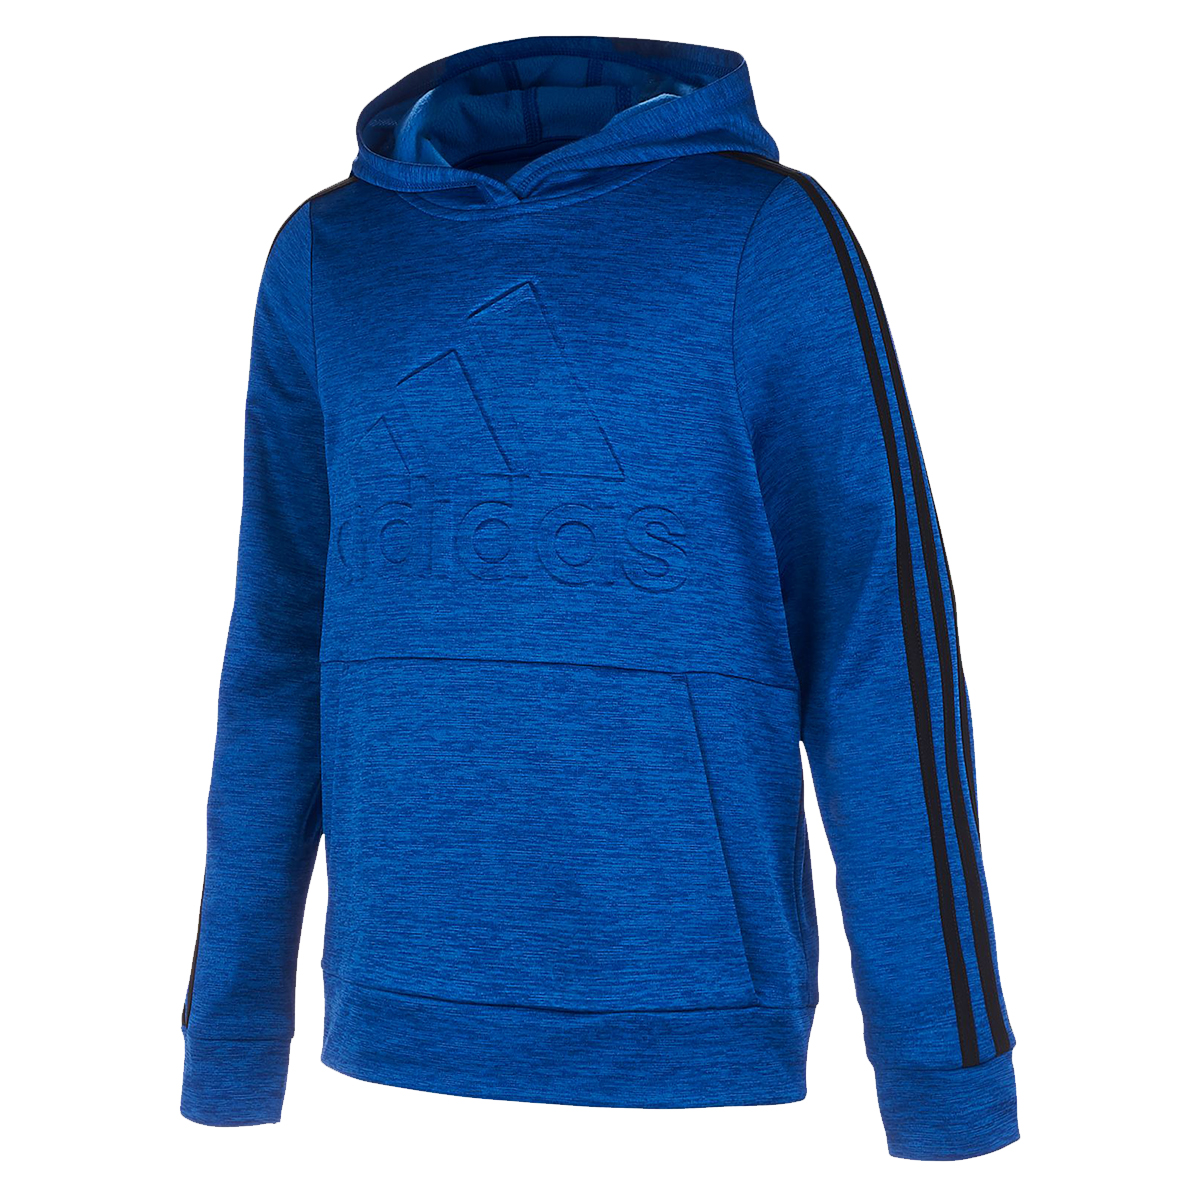 Adidas Big Boys' Embossed Pullover Hoodie - Blue, L